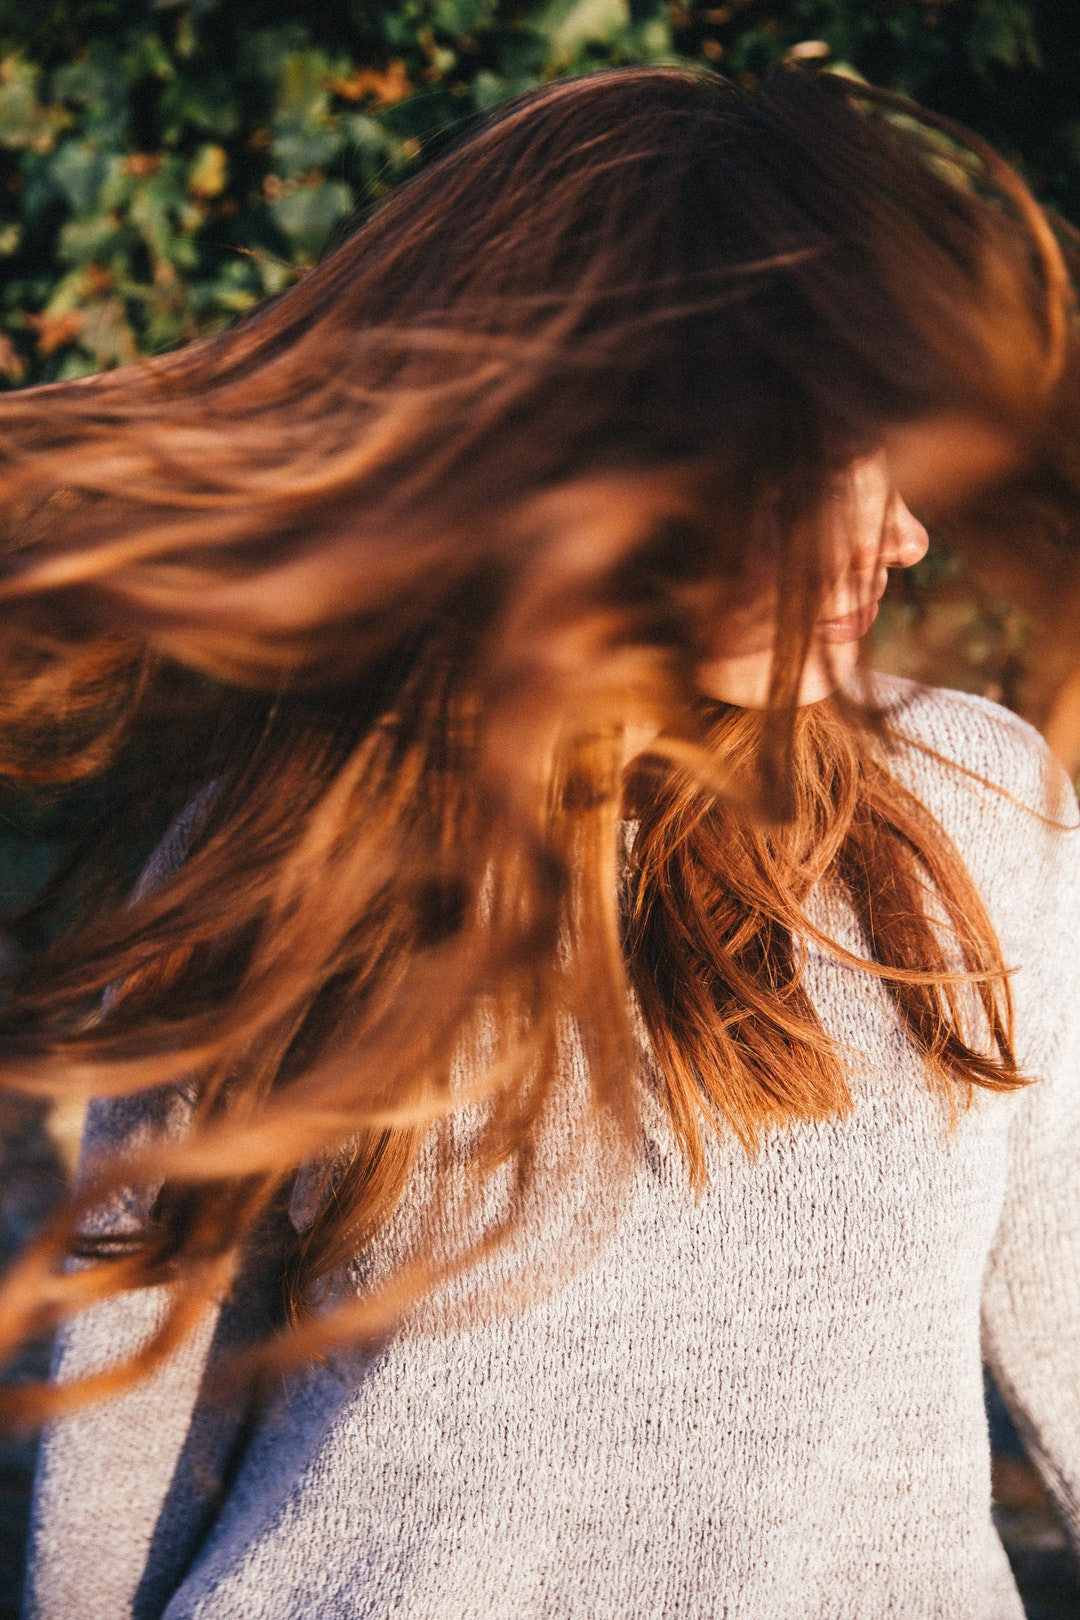 Woman shaking out her hair freely